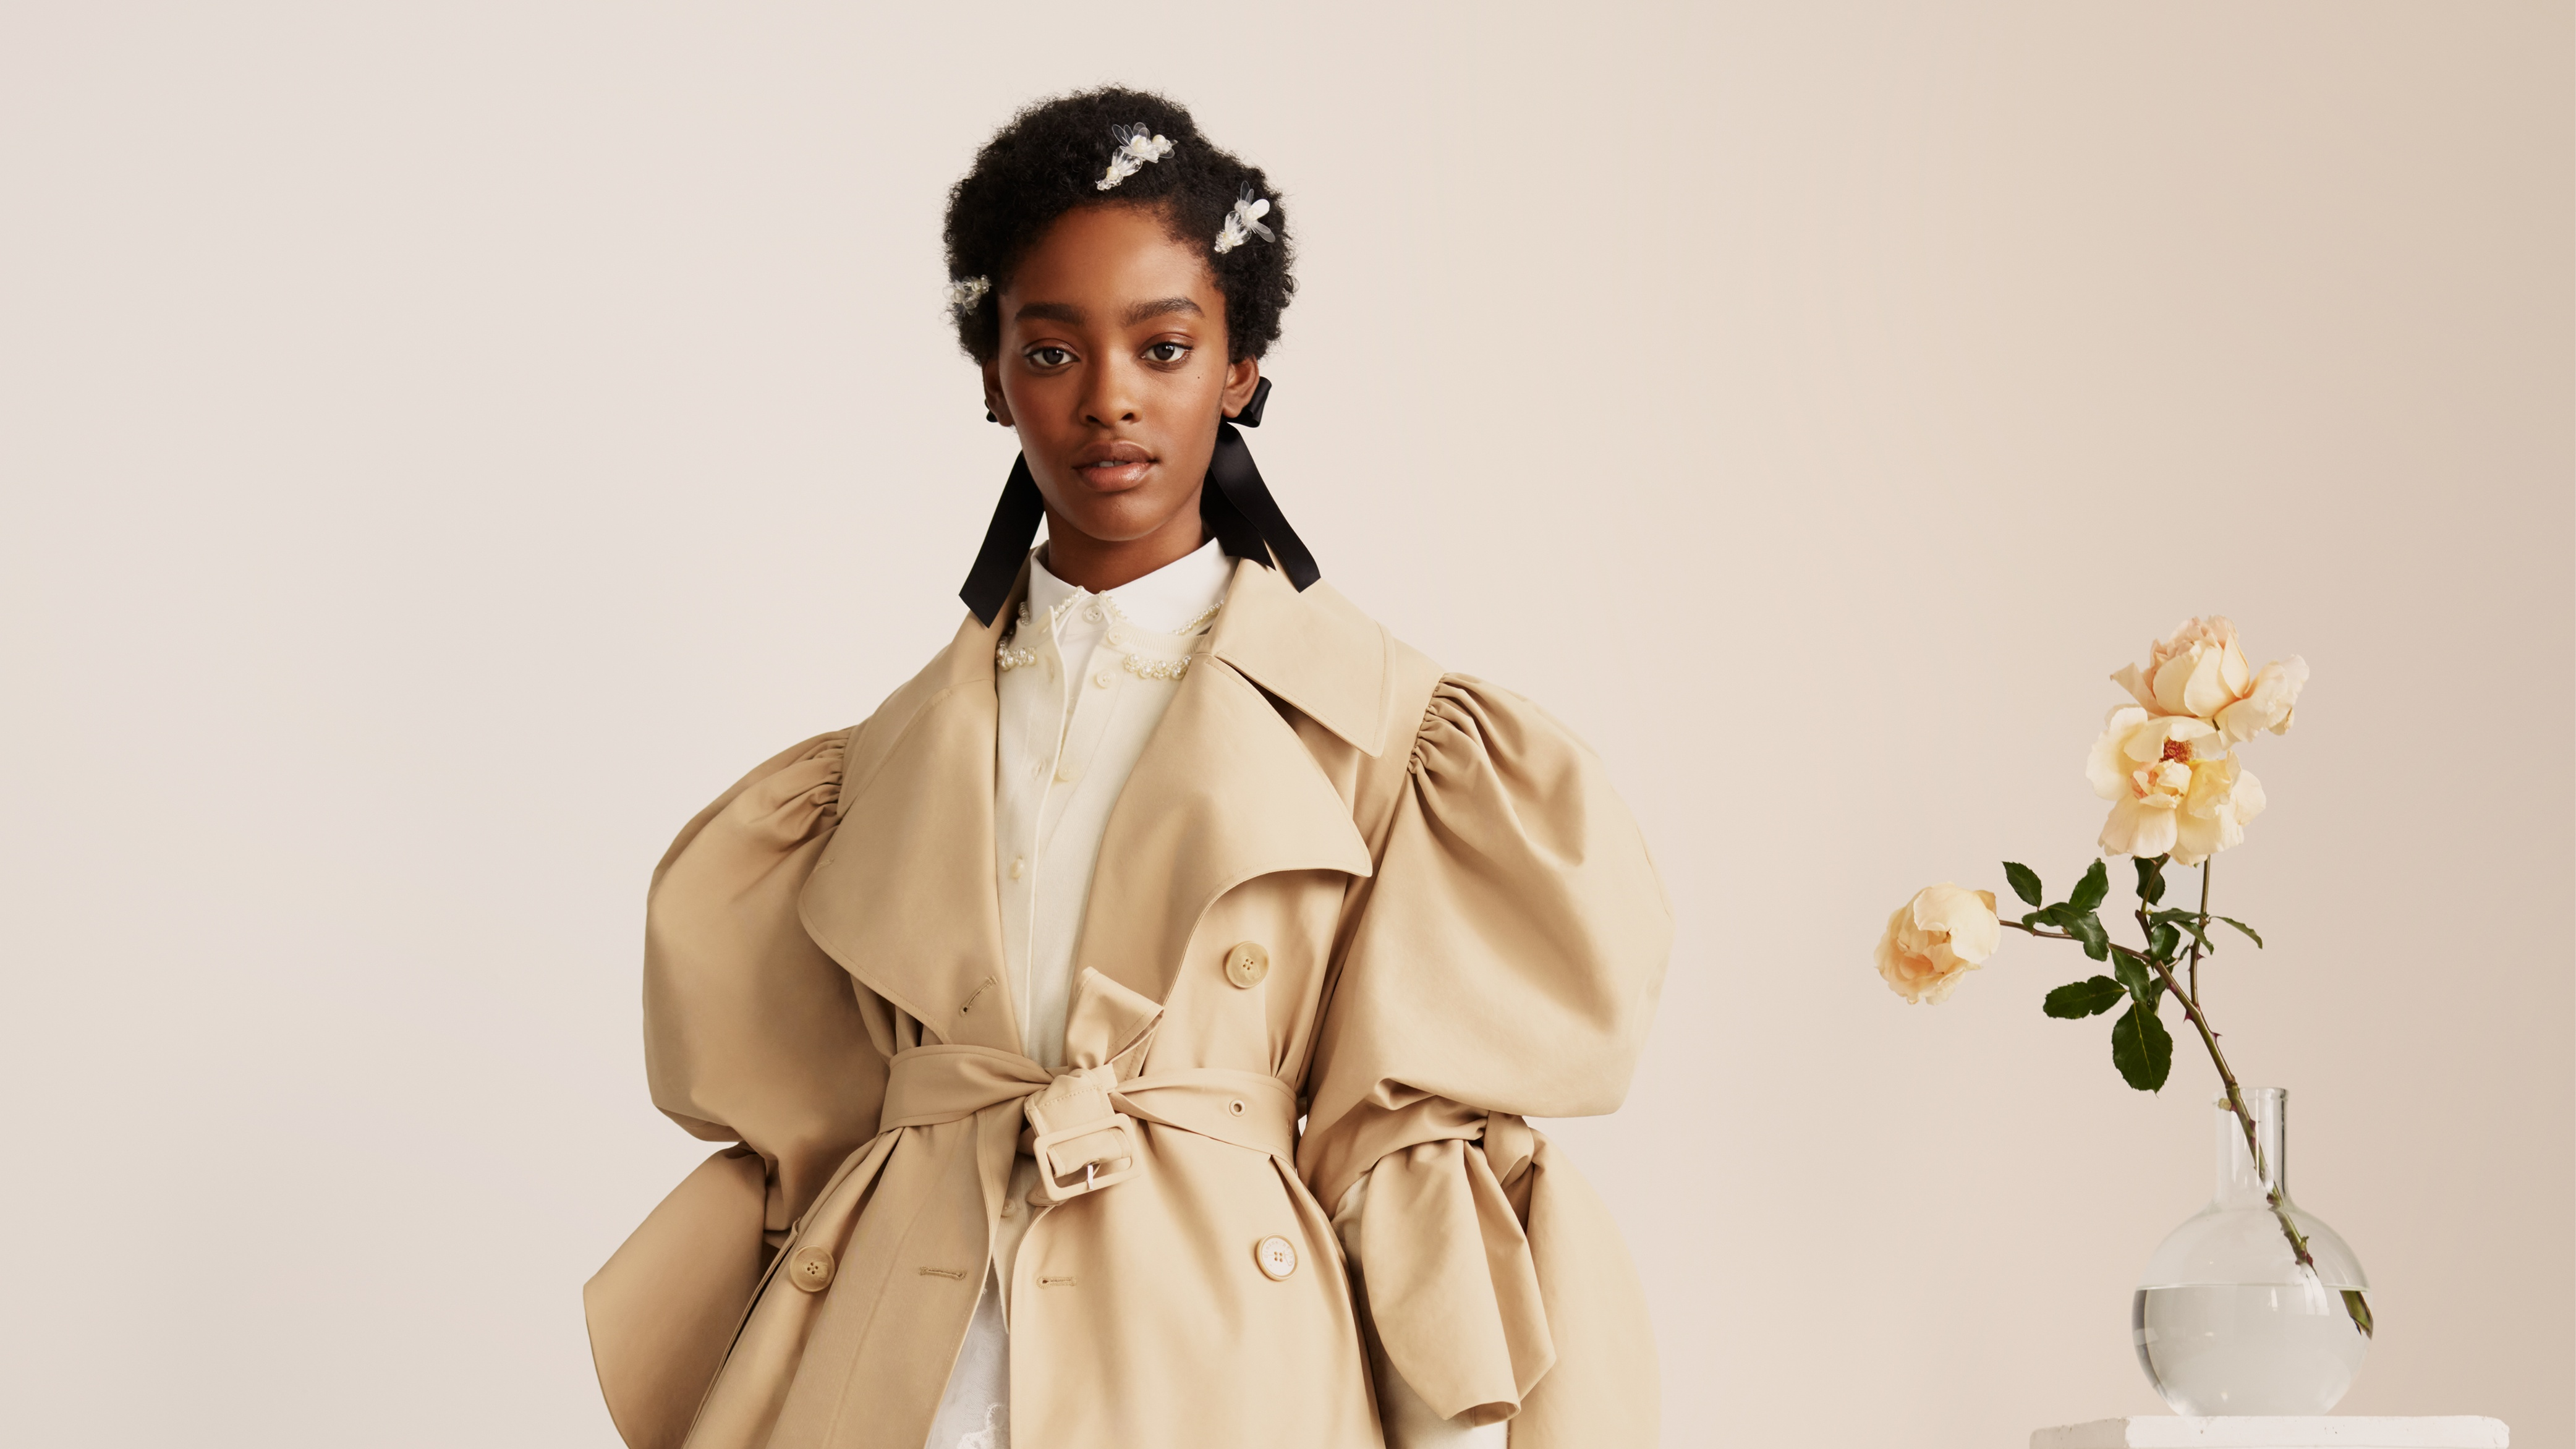 All The Looks From The New Simone Rocha and H&M Collab